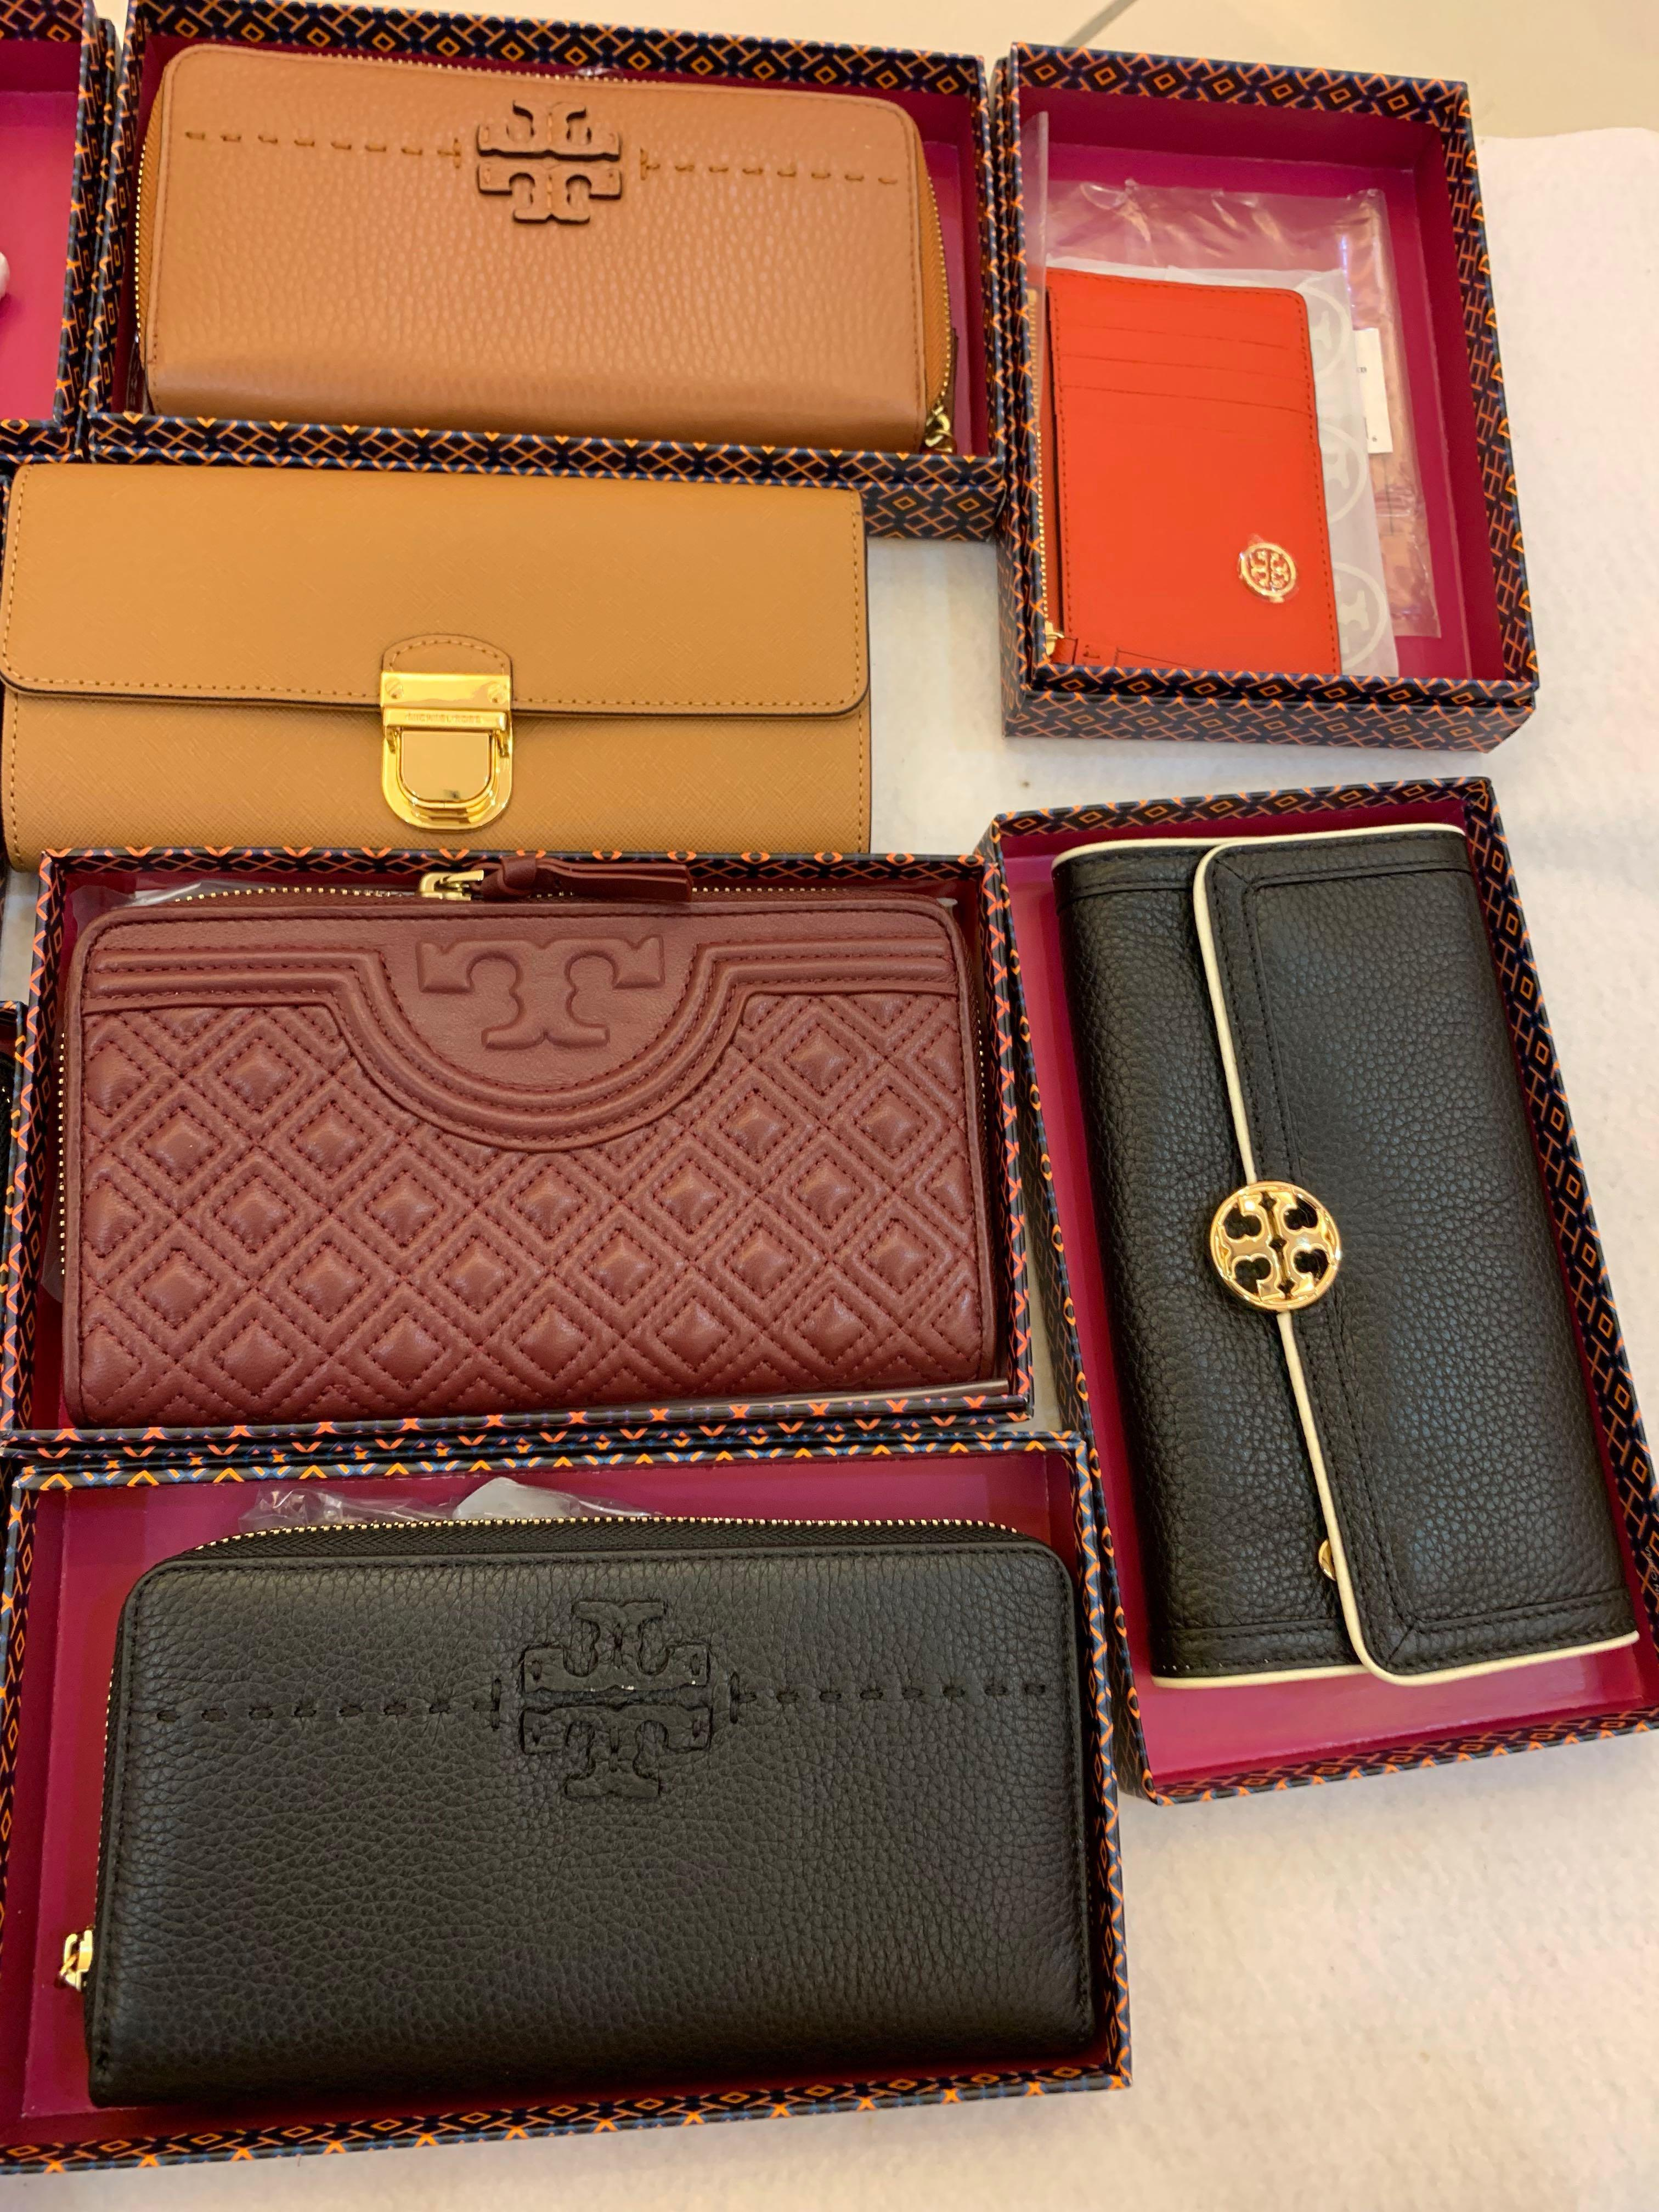 (01/03/19)Authentic Tory Burch promotion clearance ready stock mk card holder lanyard Michael kors